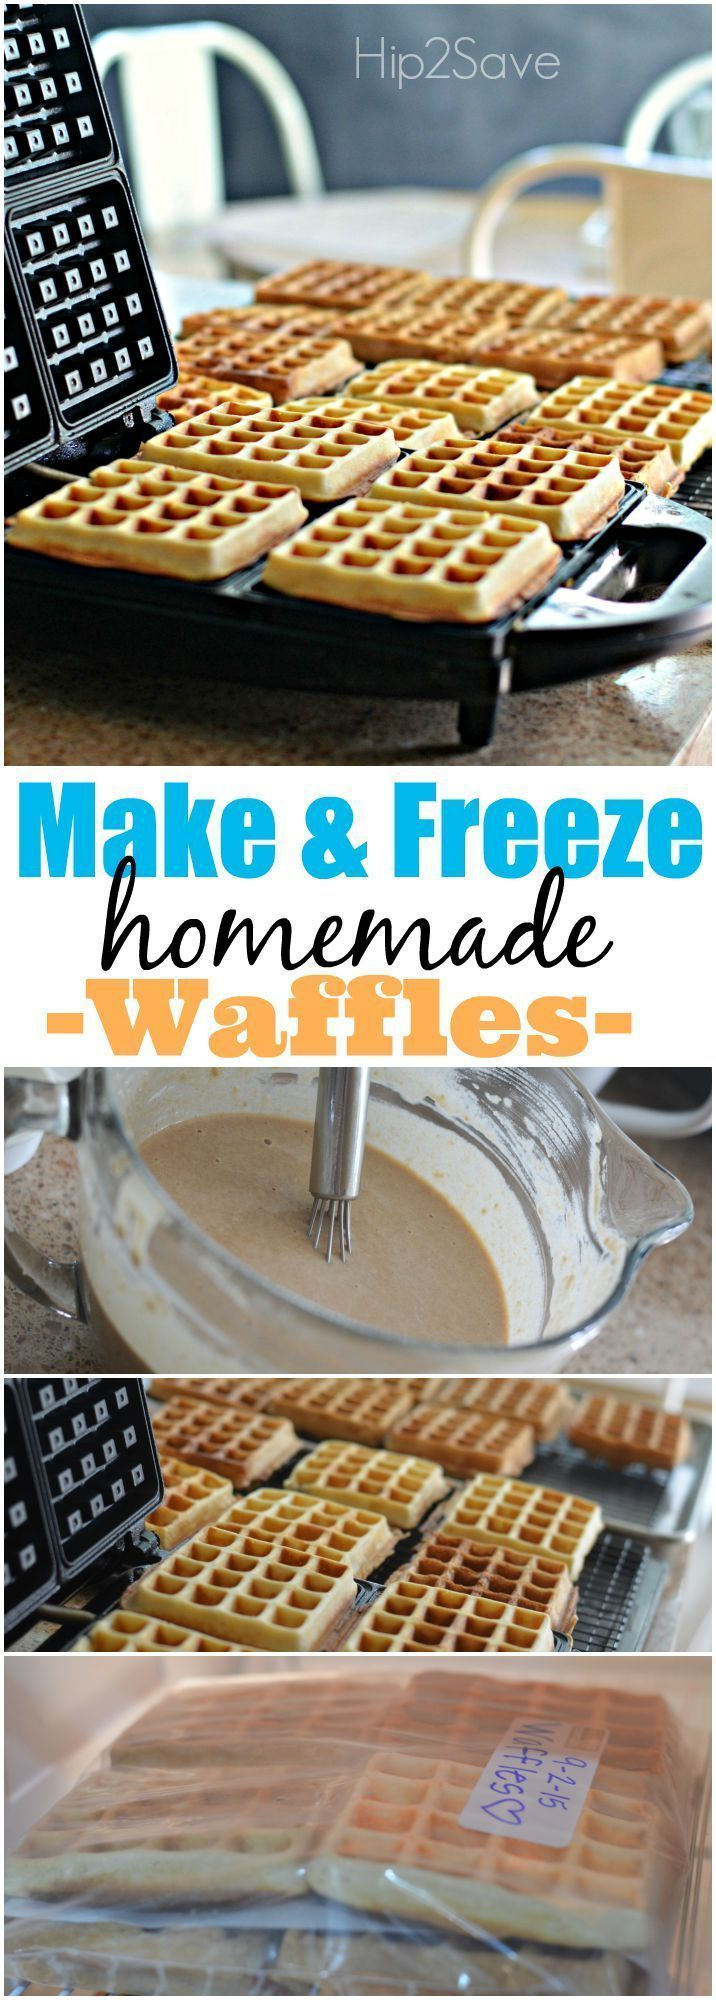 The Best Homemade Waffles to Make & Freeze